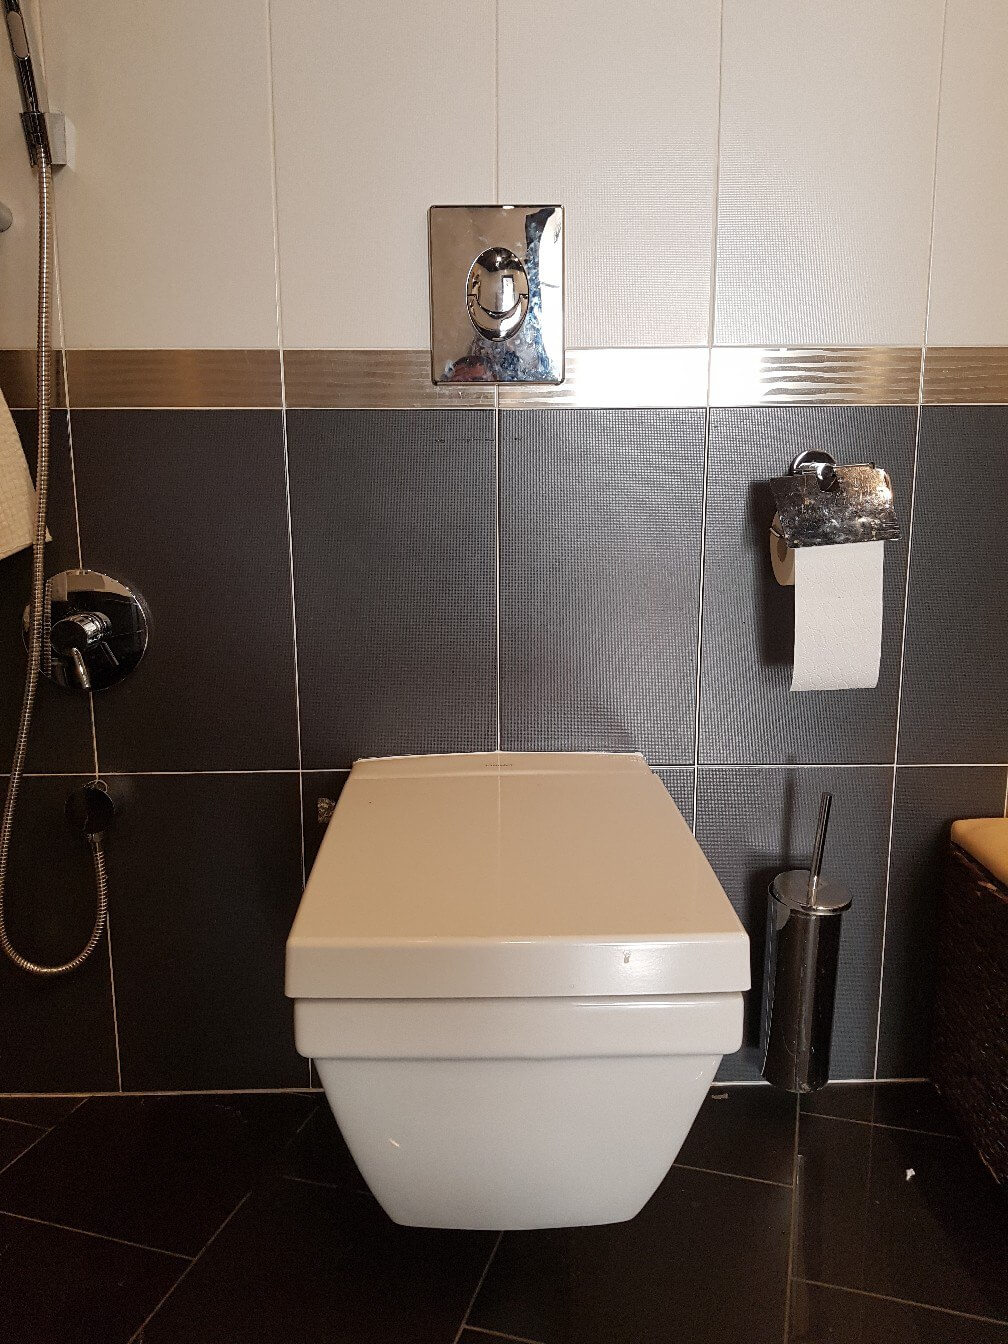 20182203-remont-installacii-grohe-5.jpg